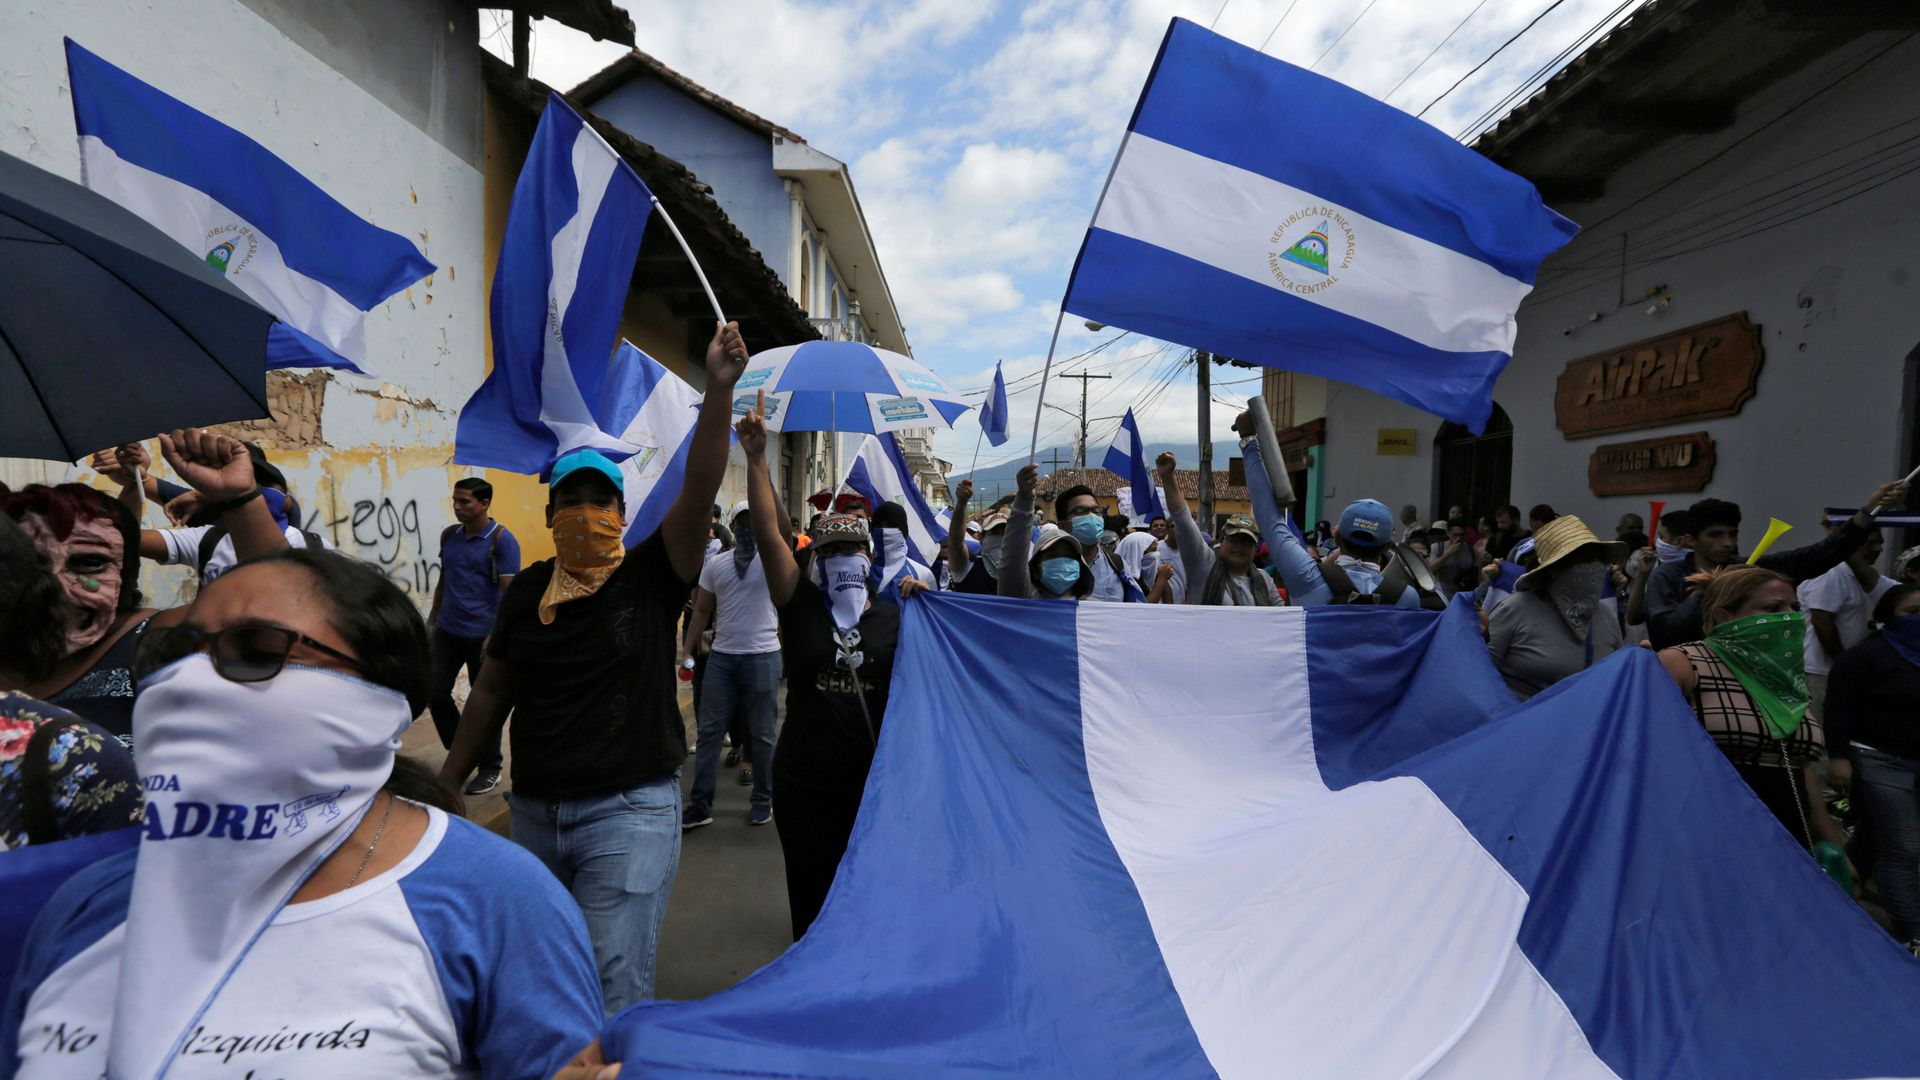 Anti-government protesters take part in a march dubbed 'United Nicaragua will never be defeated' in Granada, Nicaragua on August 25, 2018